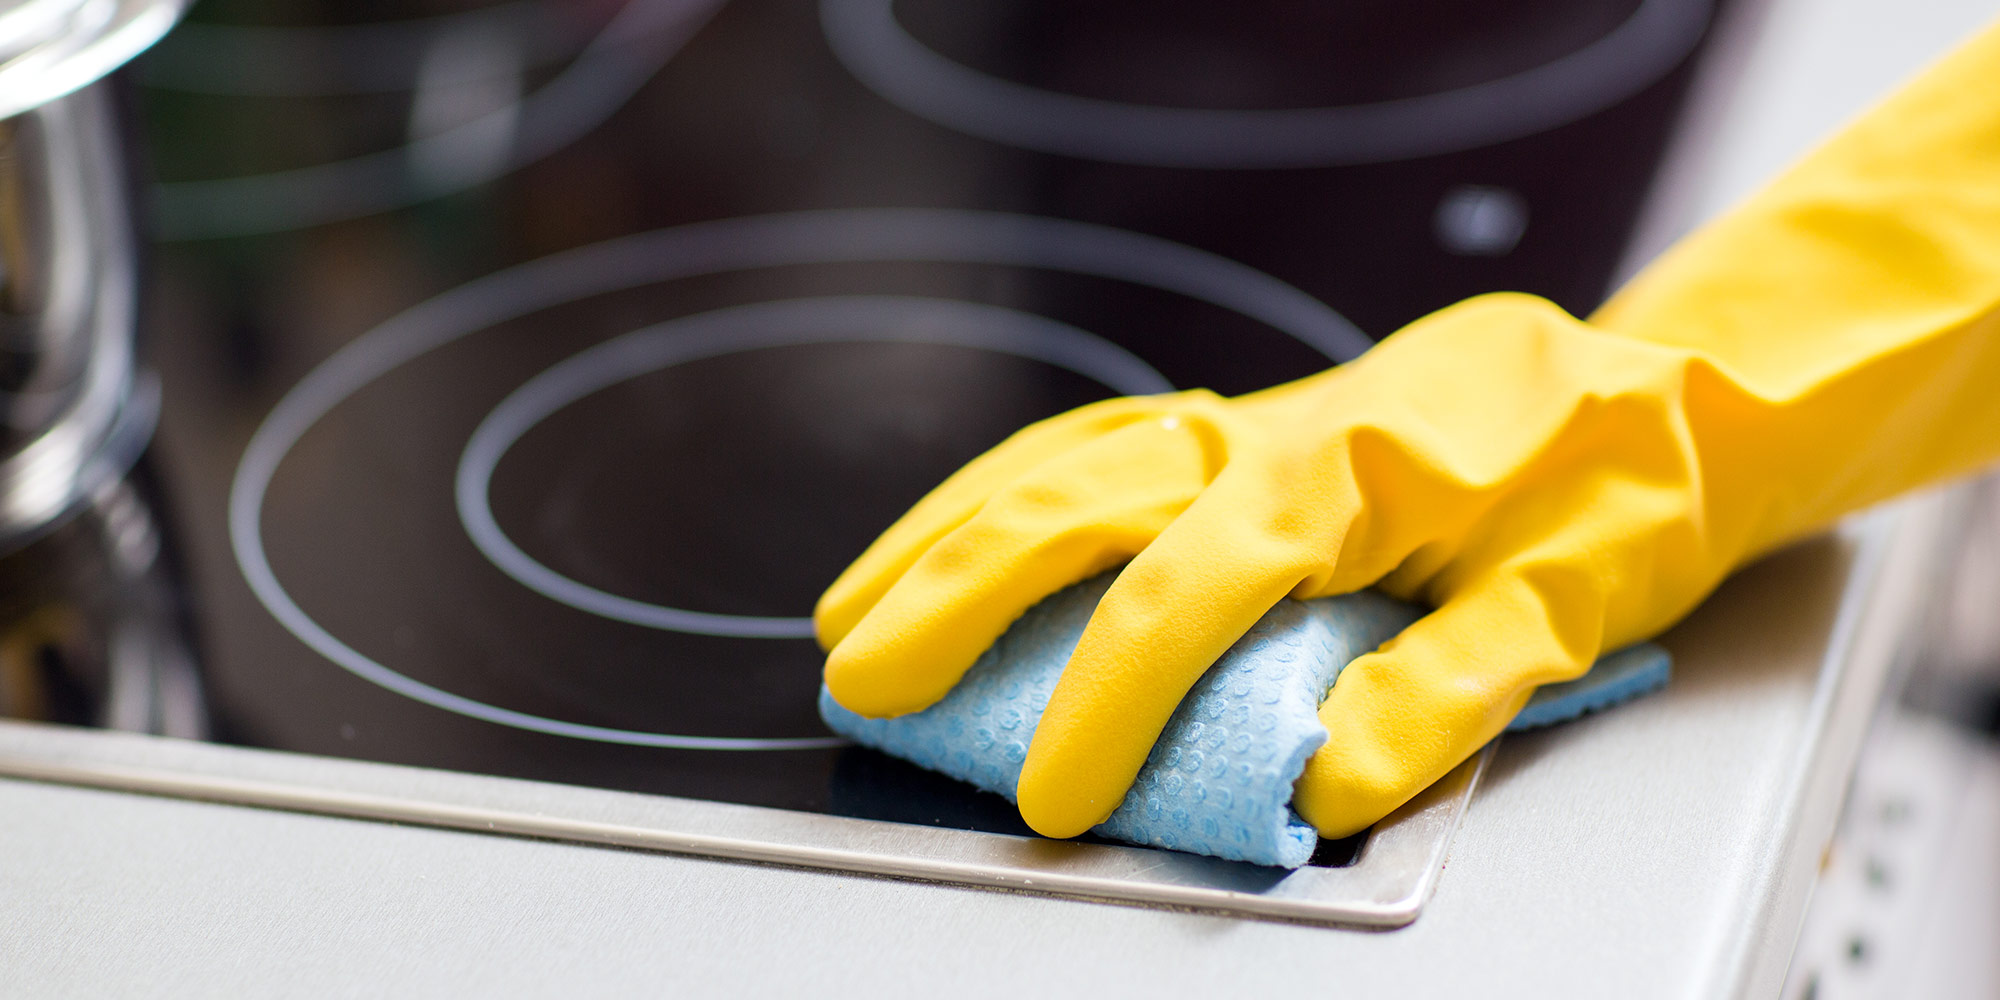 To help make cleaning easier, manufacturers have introduced wonderful new cleaning products and equipment. I love microfiber cloths because they are so handy and do a great cleaning job. Try these hints for using them around the house.